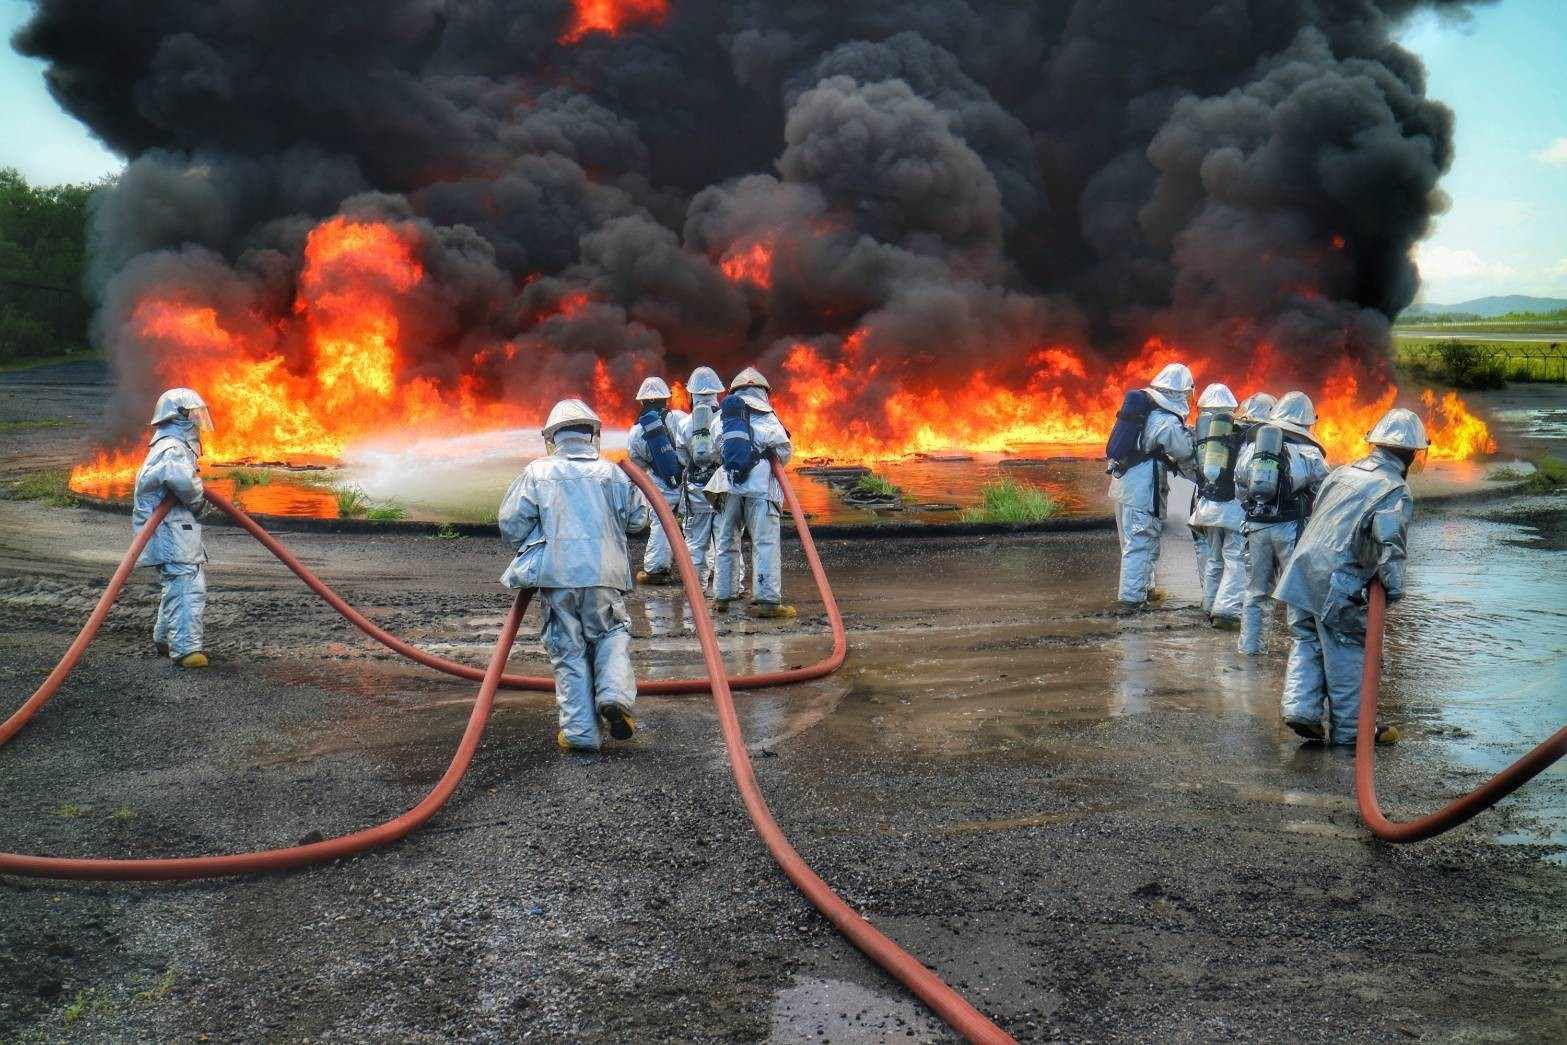 Emergency crews battle airport fire during drill   The Thaiger